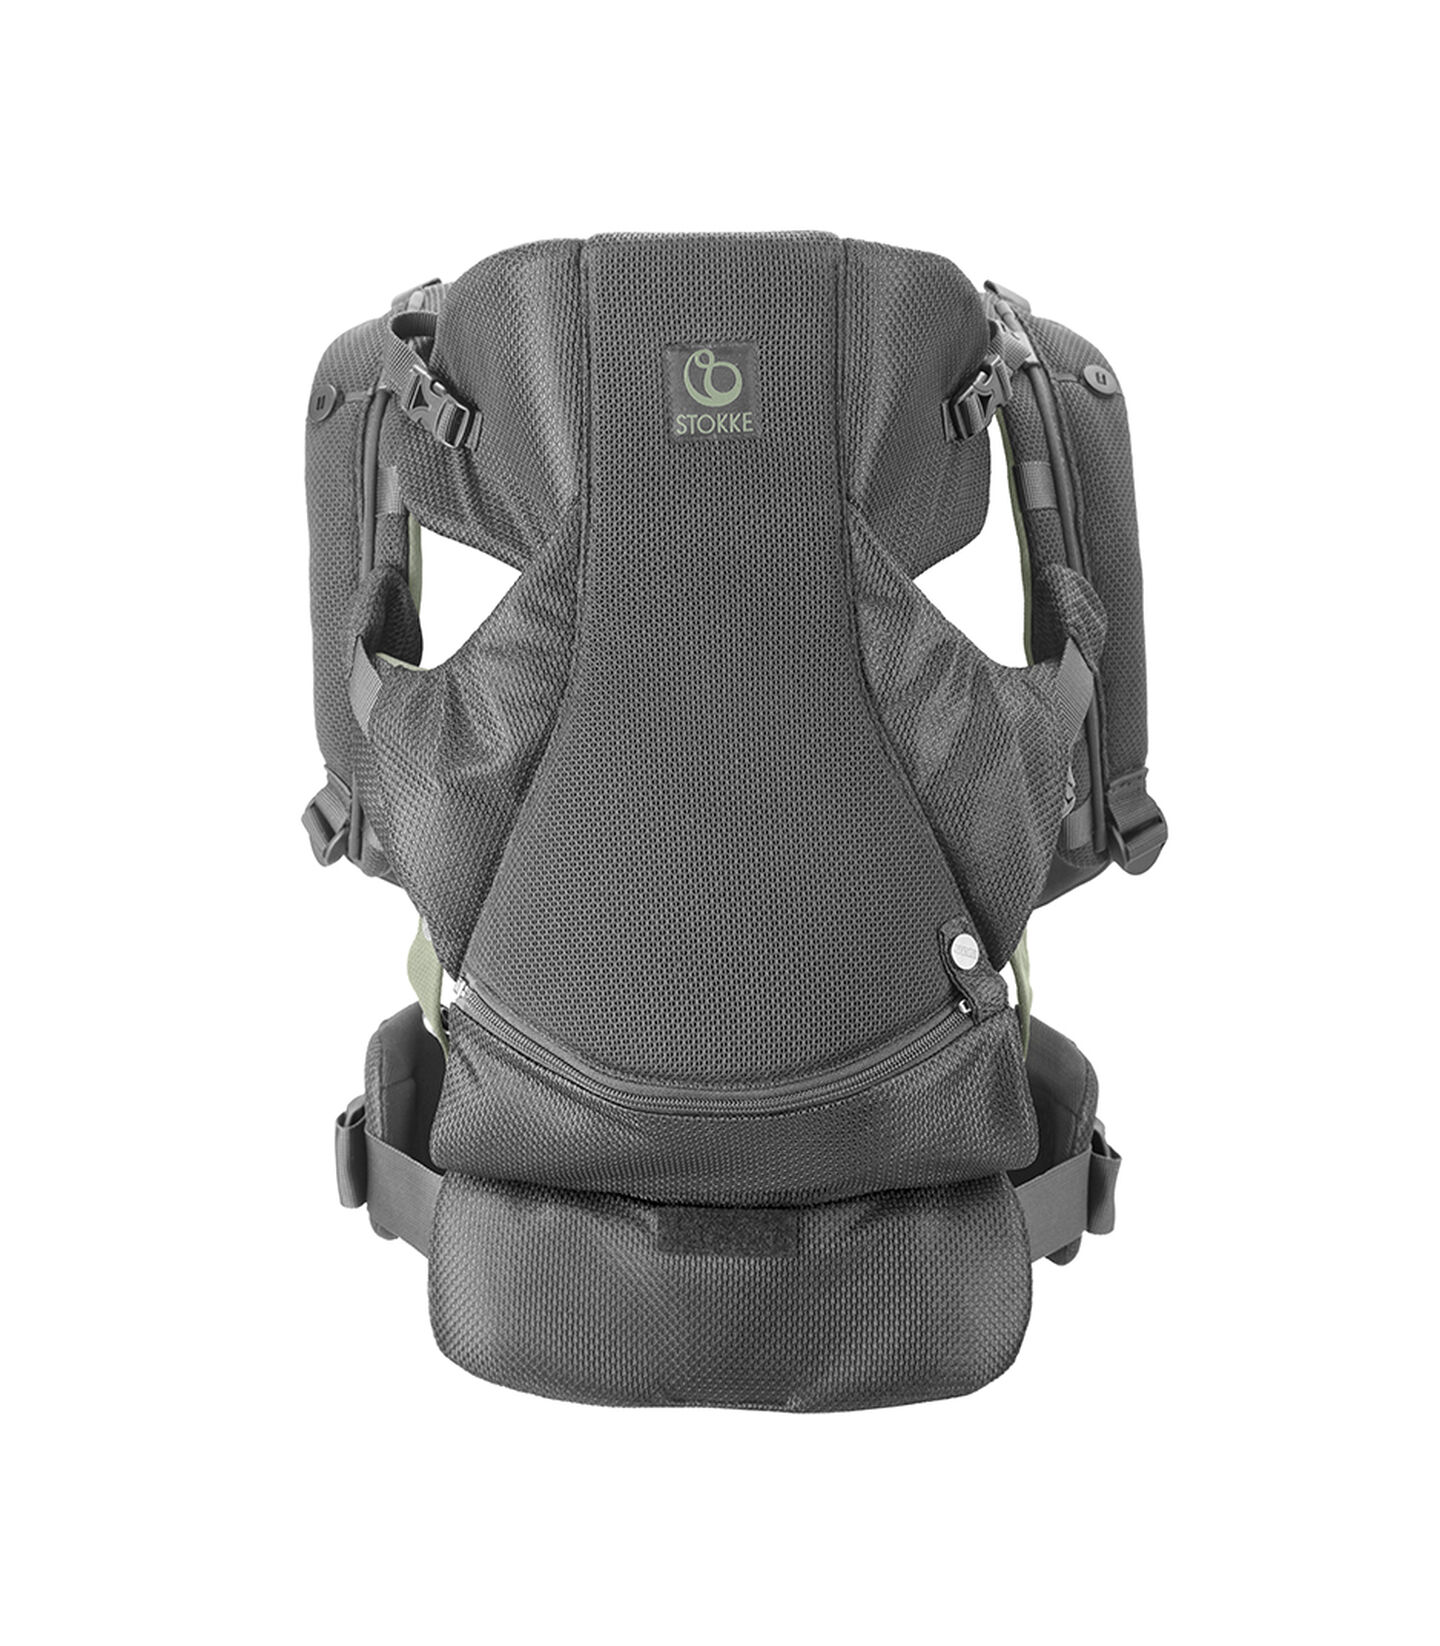 Stokke® MyCarrier™ Bauchtrage in Green Mesh, Green Mesh, mainview view 2